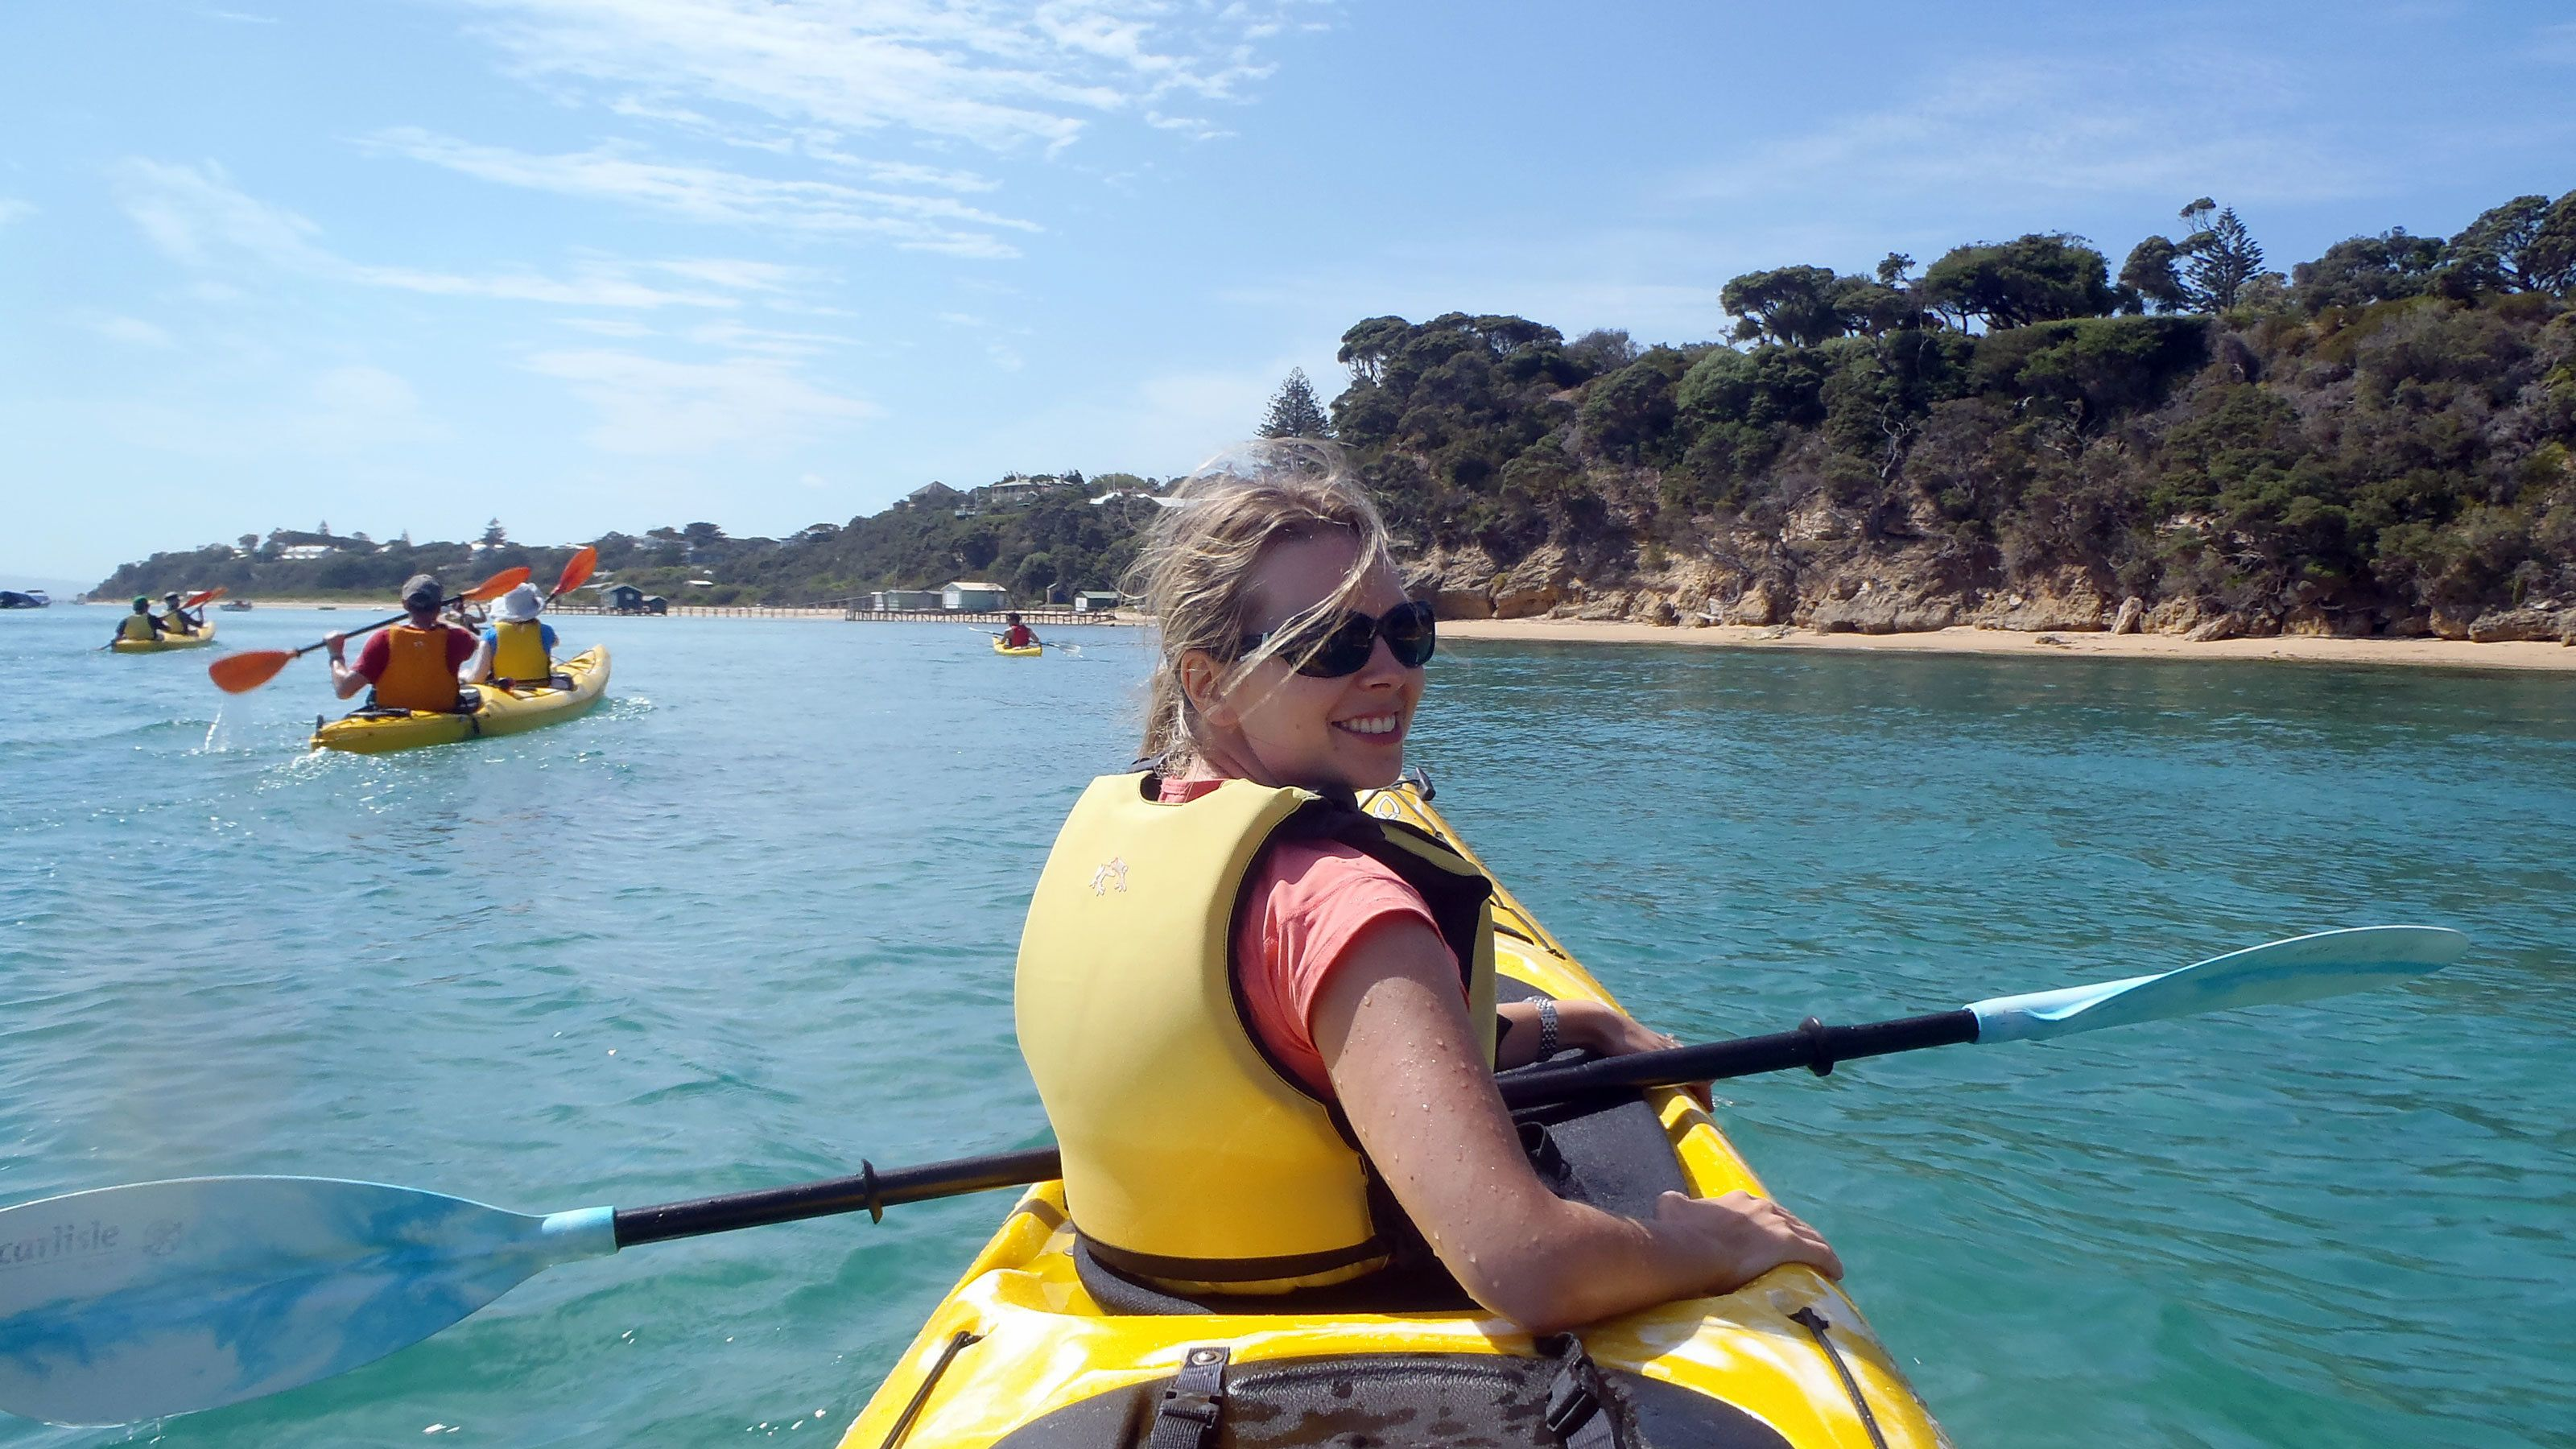 Two people in a sea kayak at Mornington Peninsula